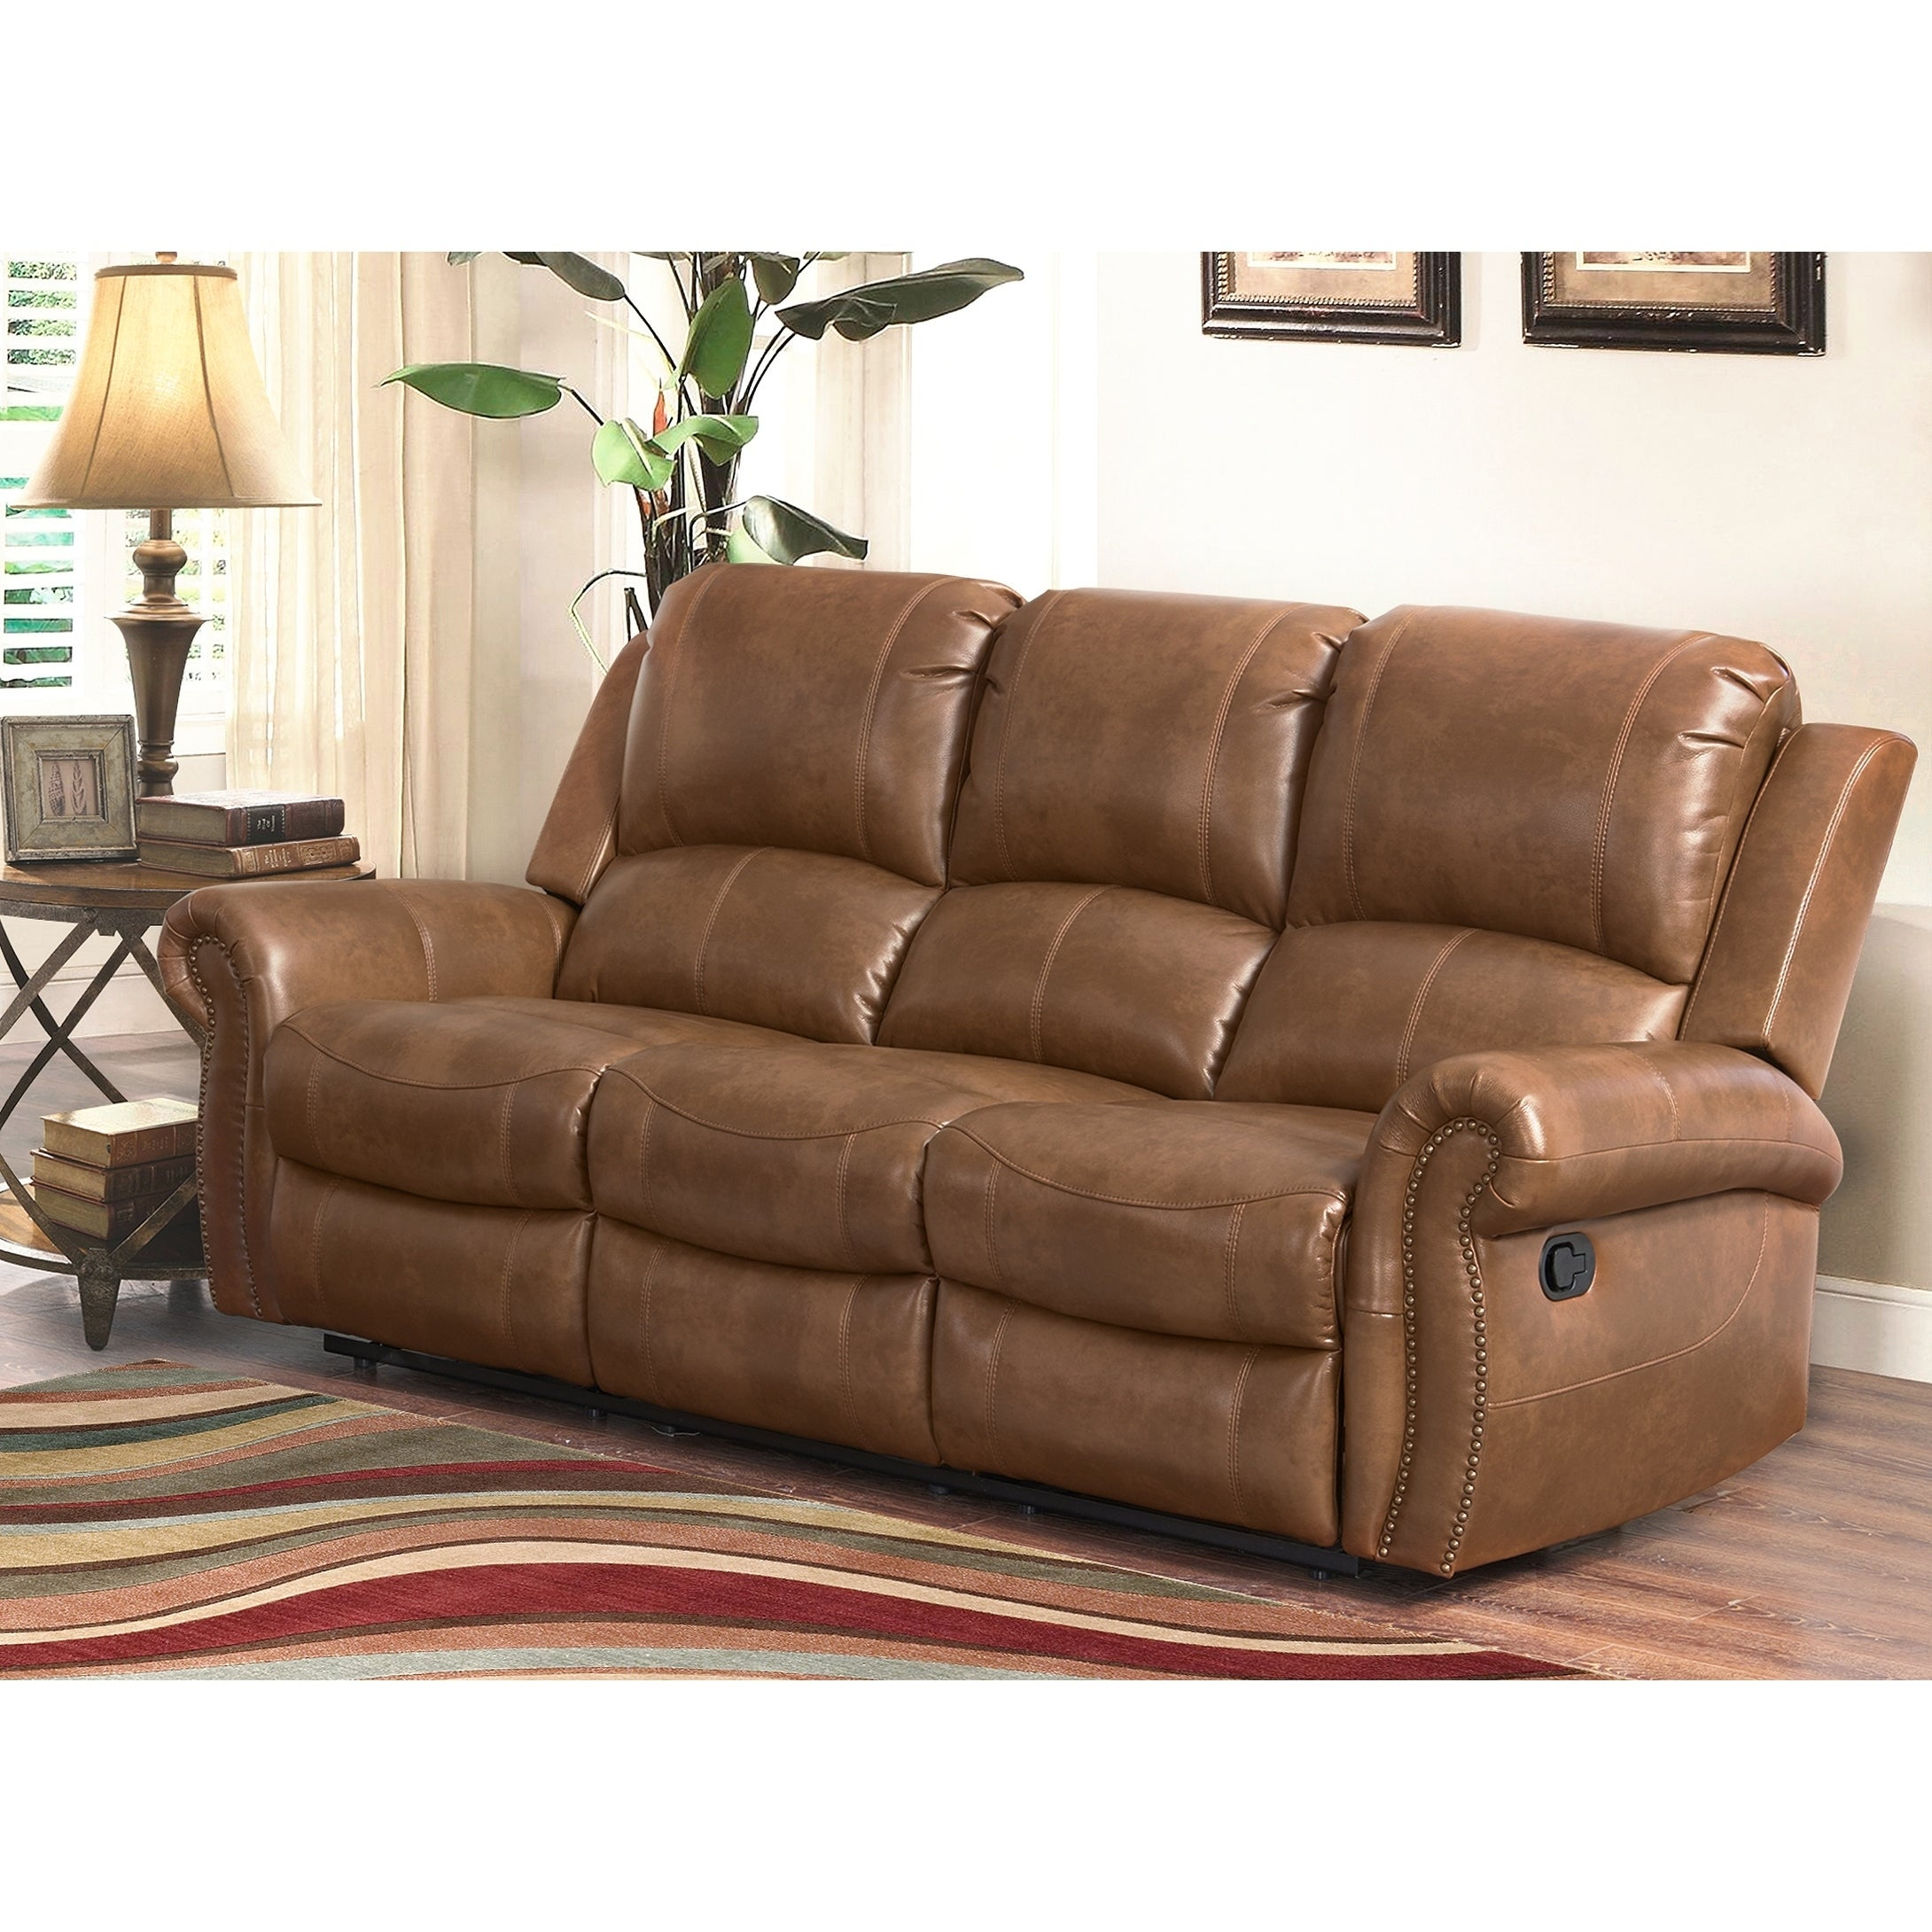 Shop Abbyson Skyler Cognac Leather Reclining Sofa - On Sale - Free ...